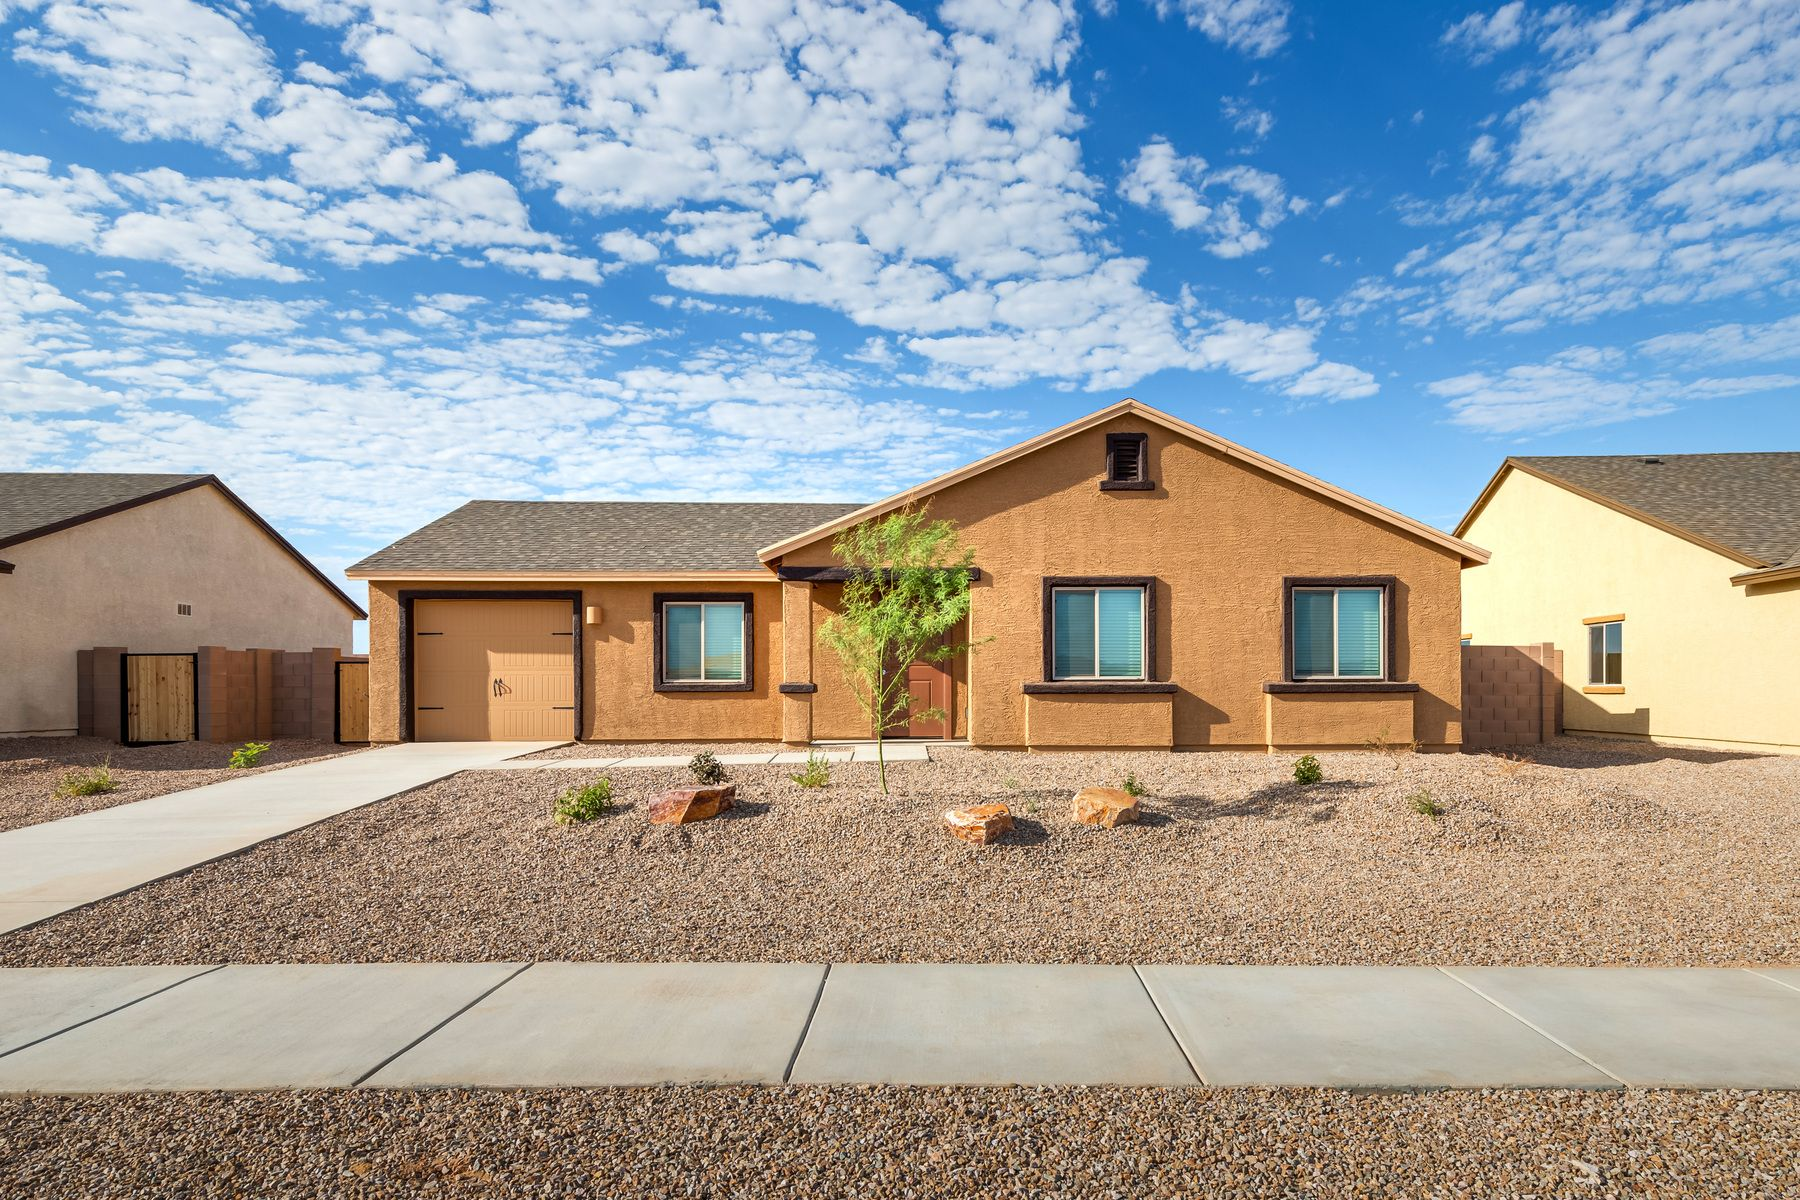 'Vahalla Ranch' by LGI Homes in Tucson